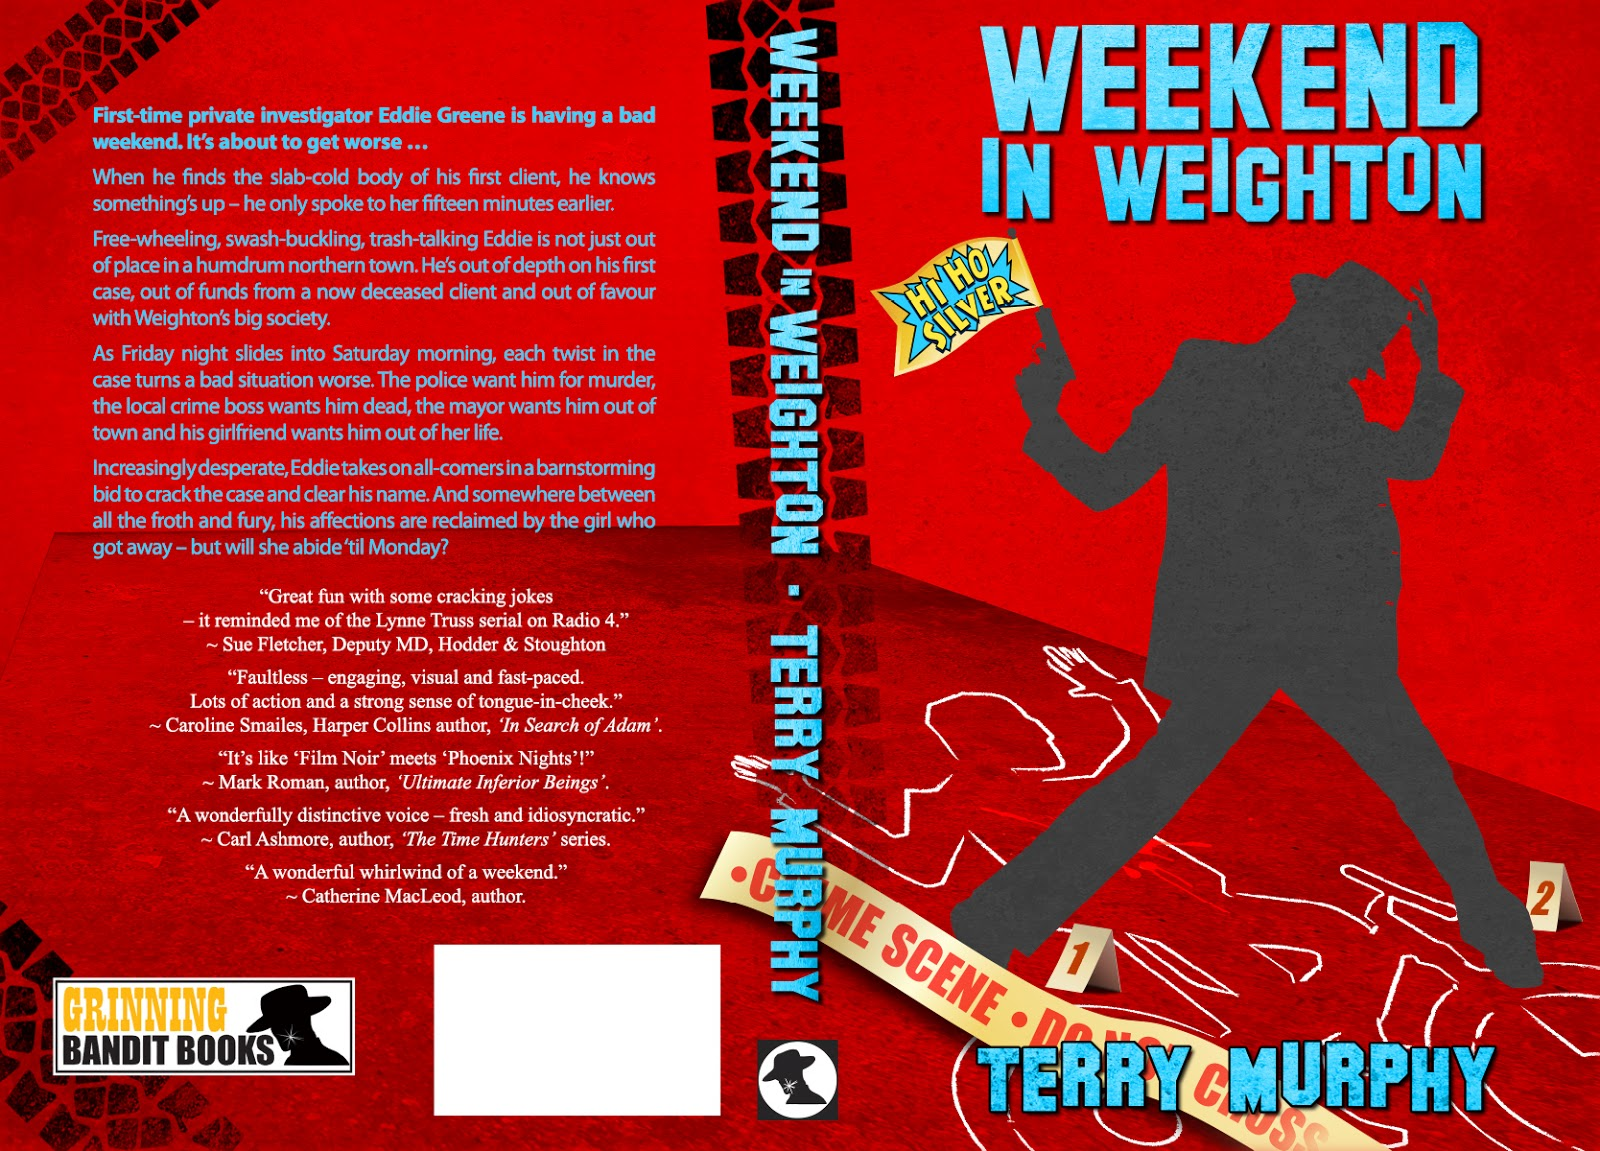 """Weekend in Weighton"" : author Terry Murphy, cover design: Kura Carpenter"